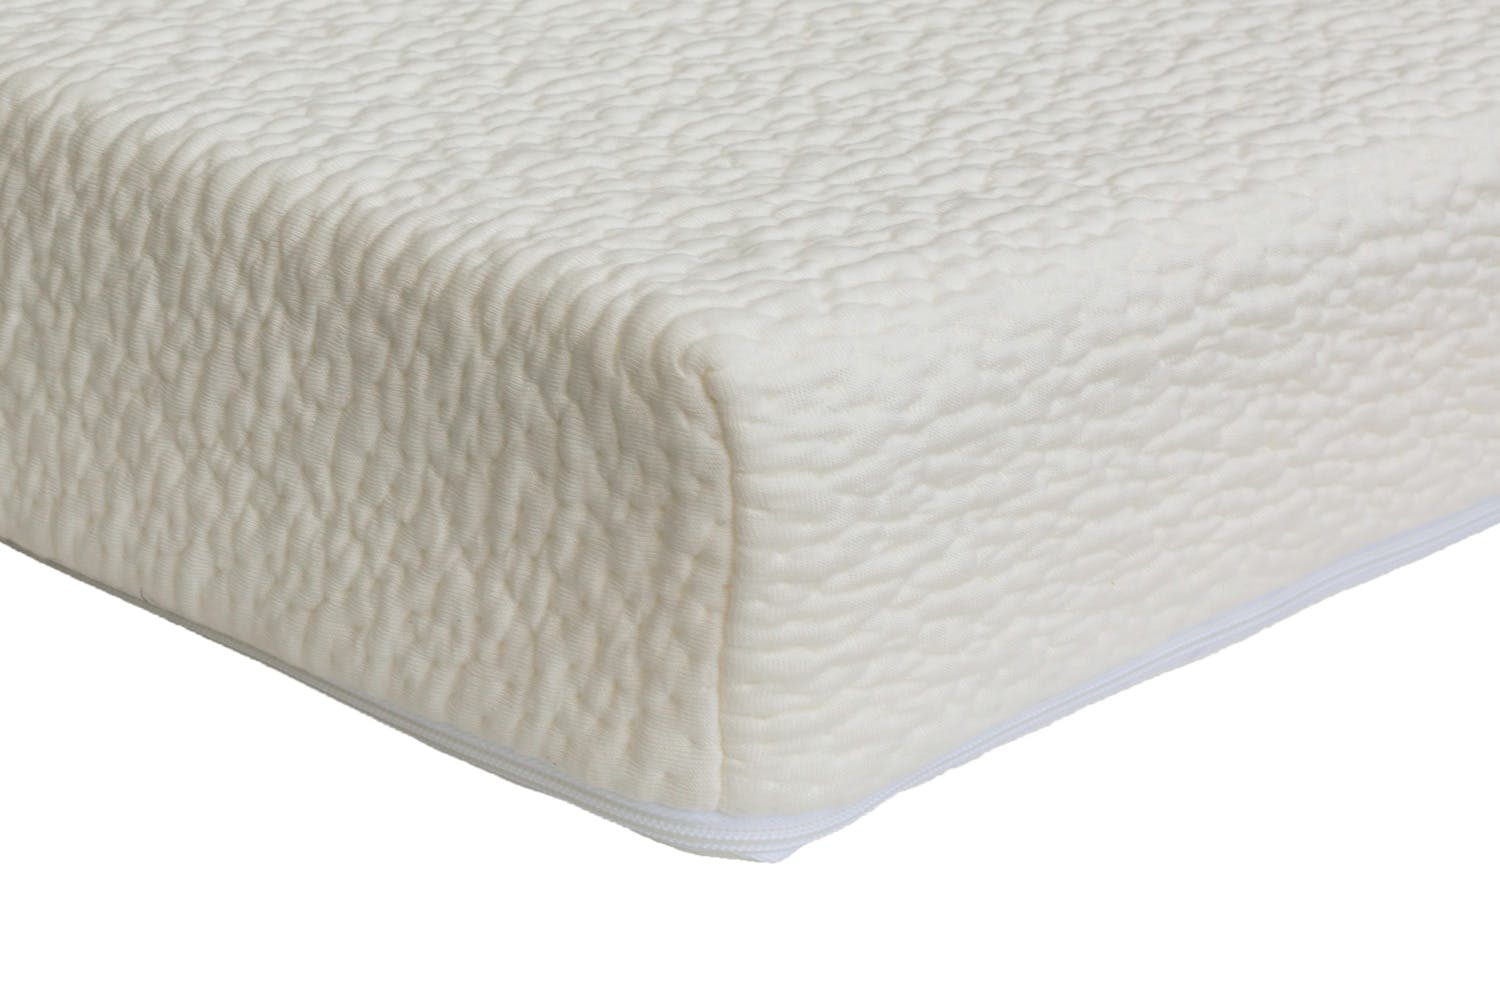 Thermopure Cotbed Mattress